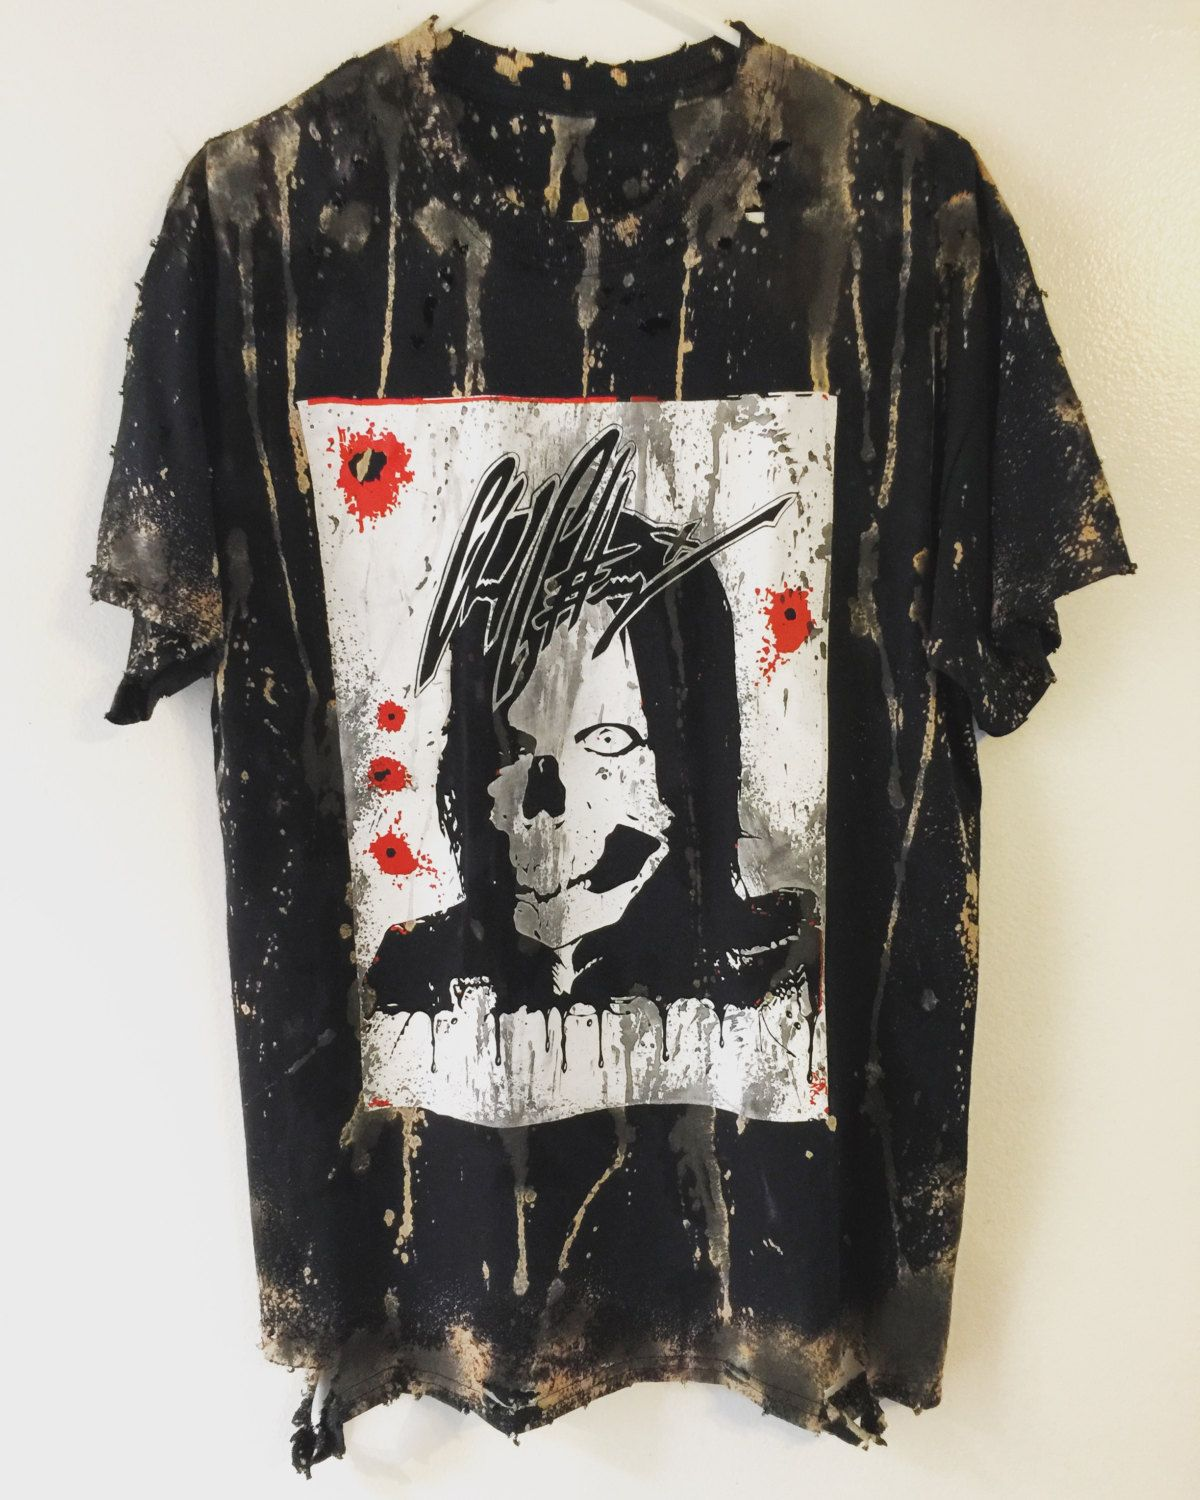 GORE t shirt from Chad Cherry Nq1pd